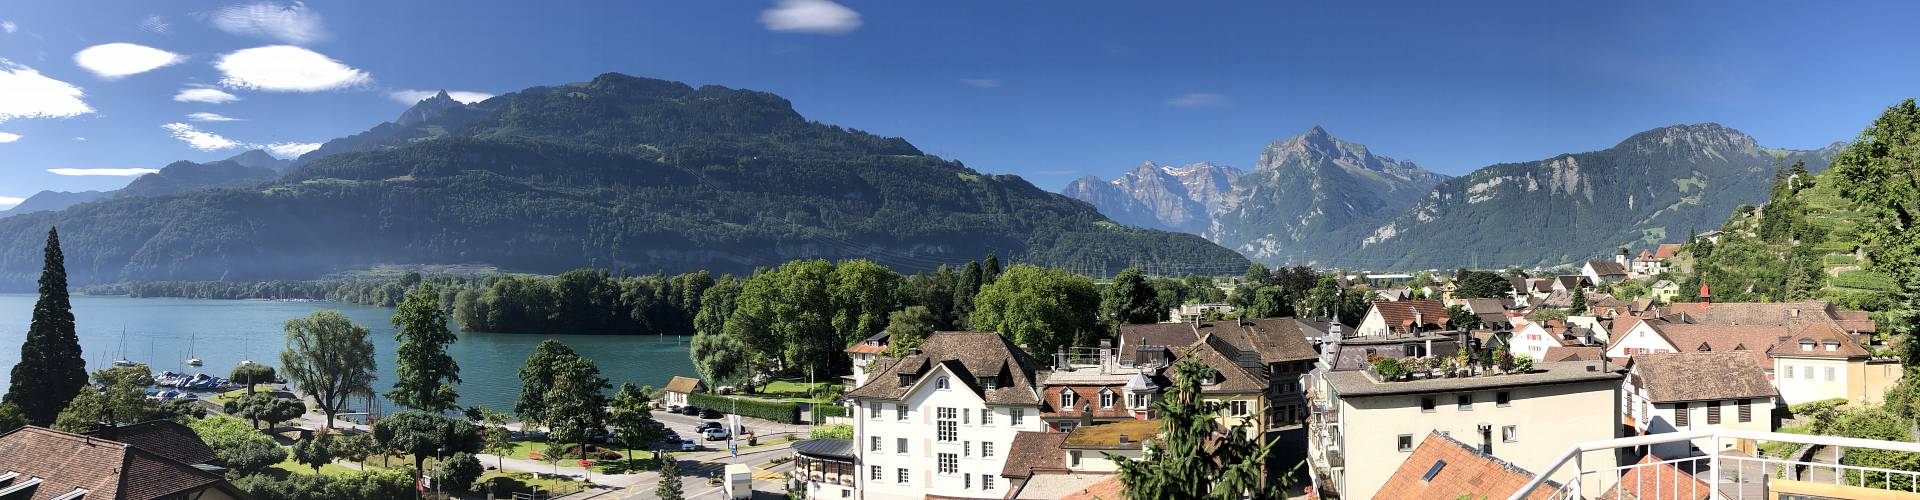 Immobilien - RE/MAX Immobilien Rapperswil-Jona